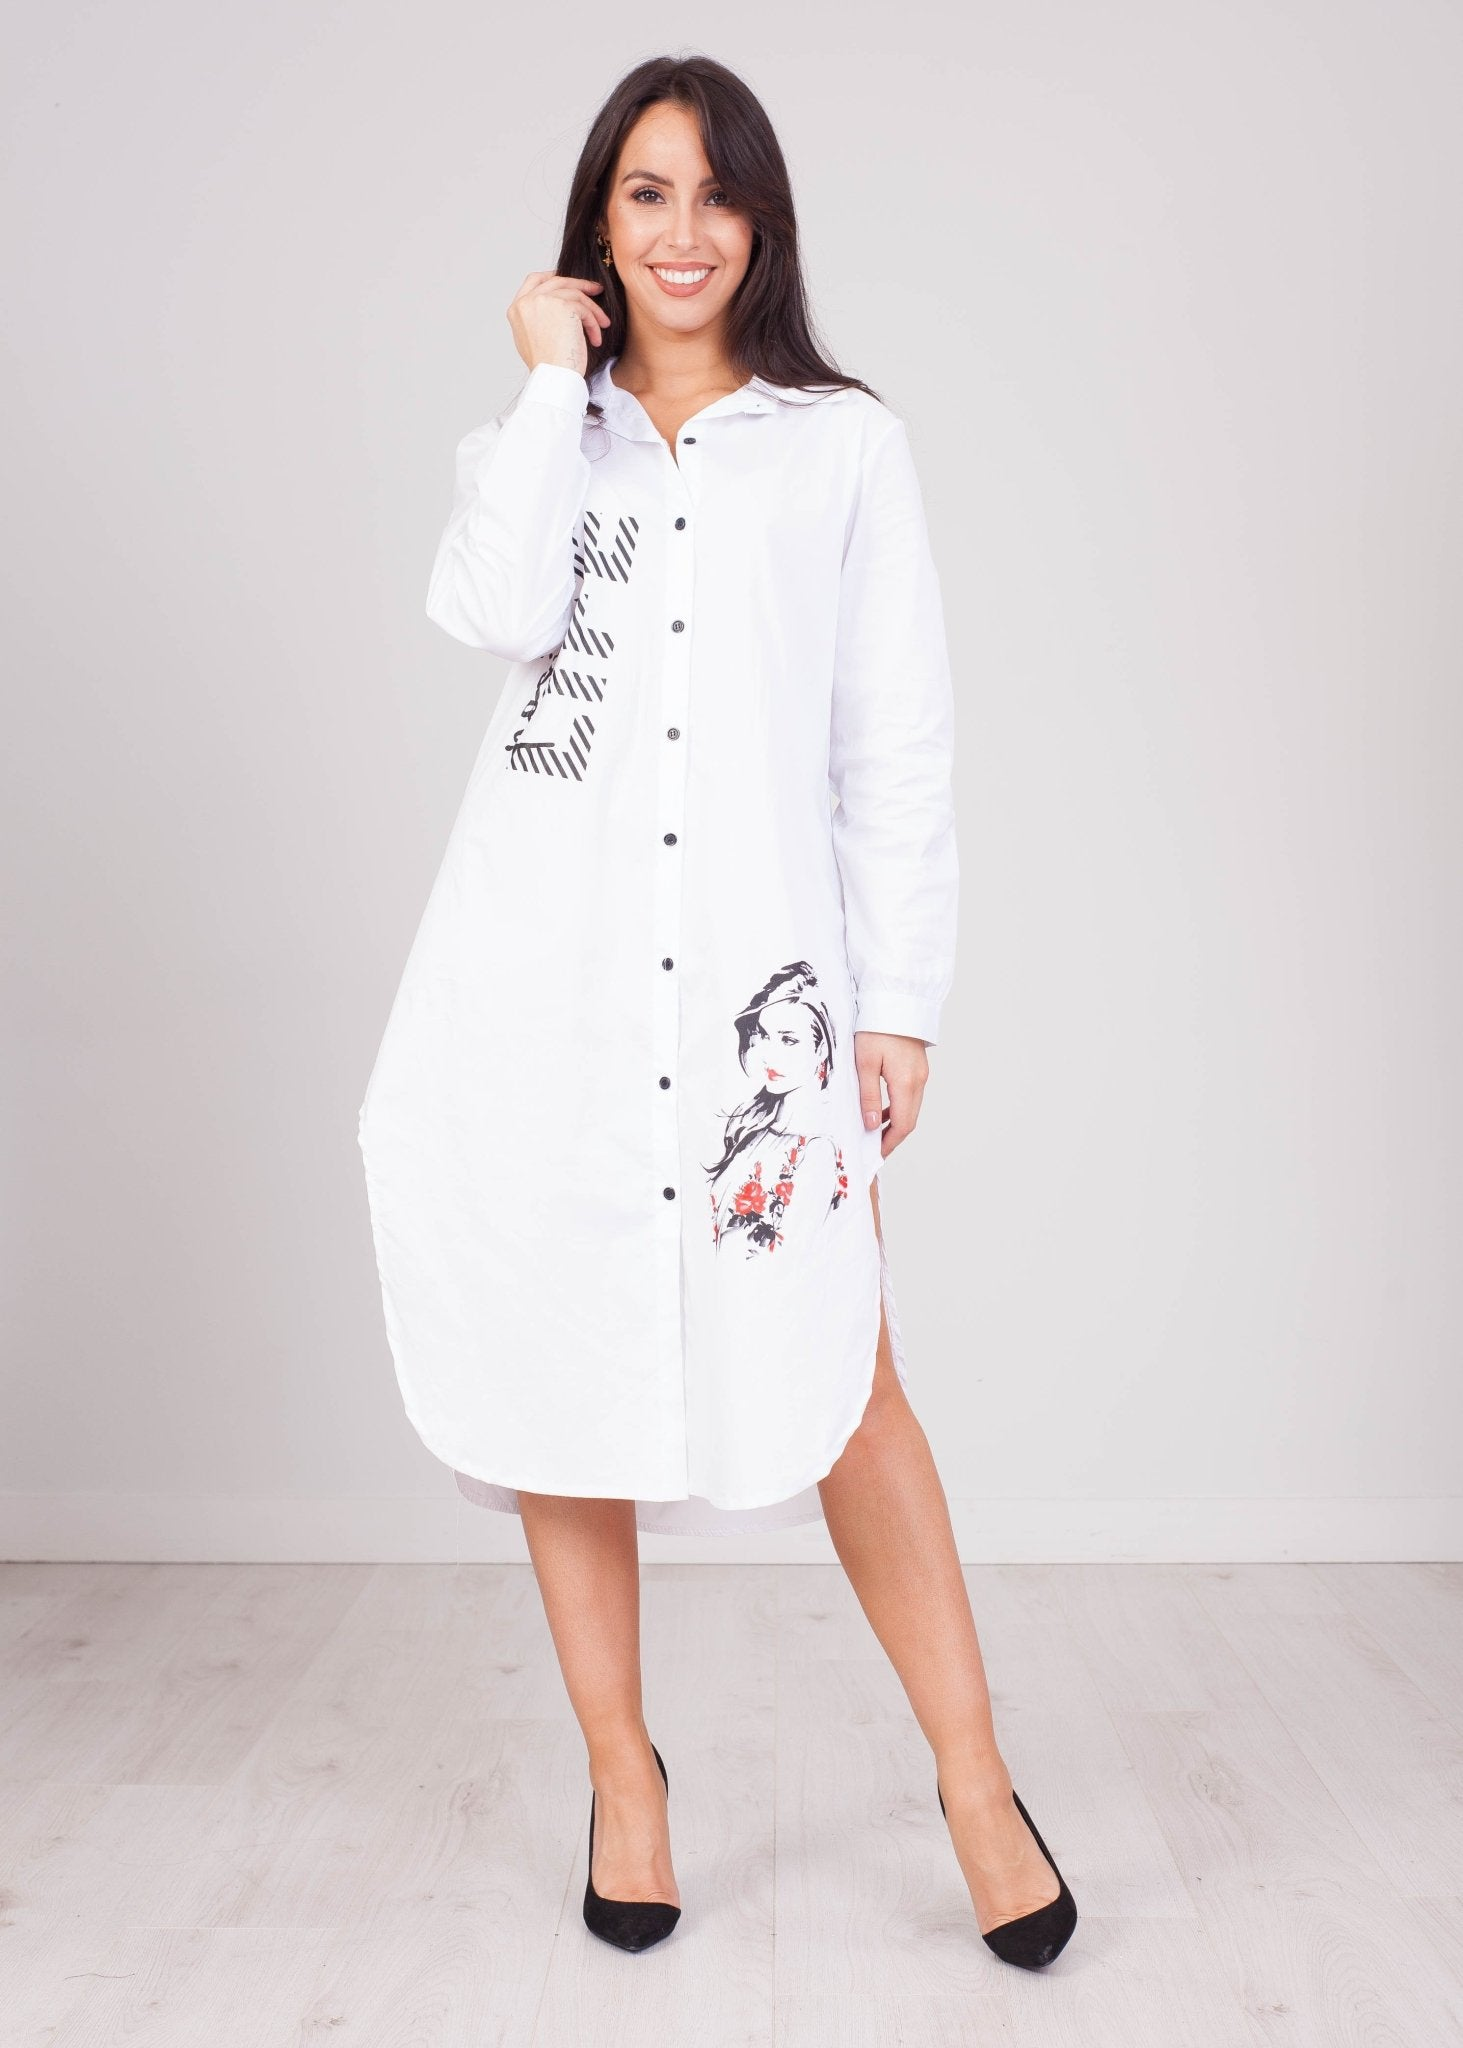 Priya White Shirt Dress With Lady - The Walk in Wardrobe